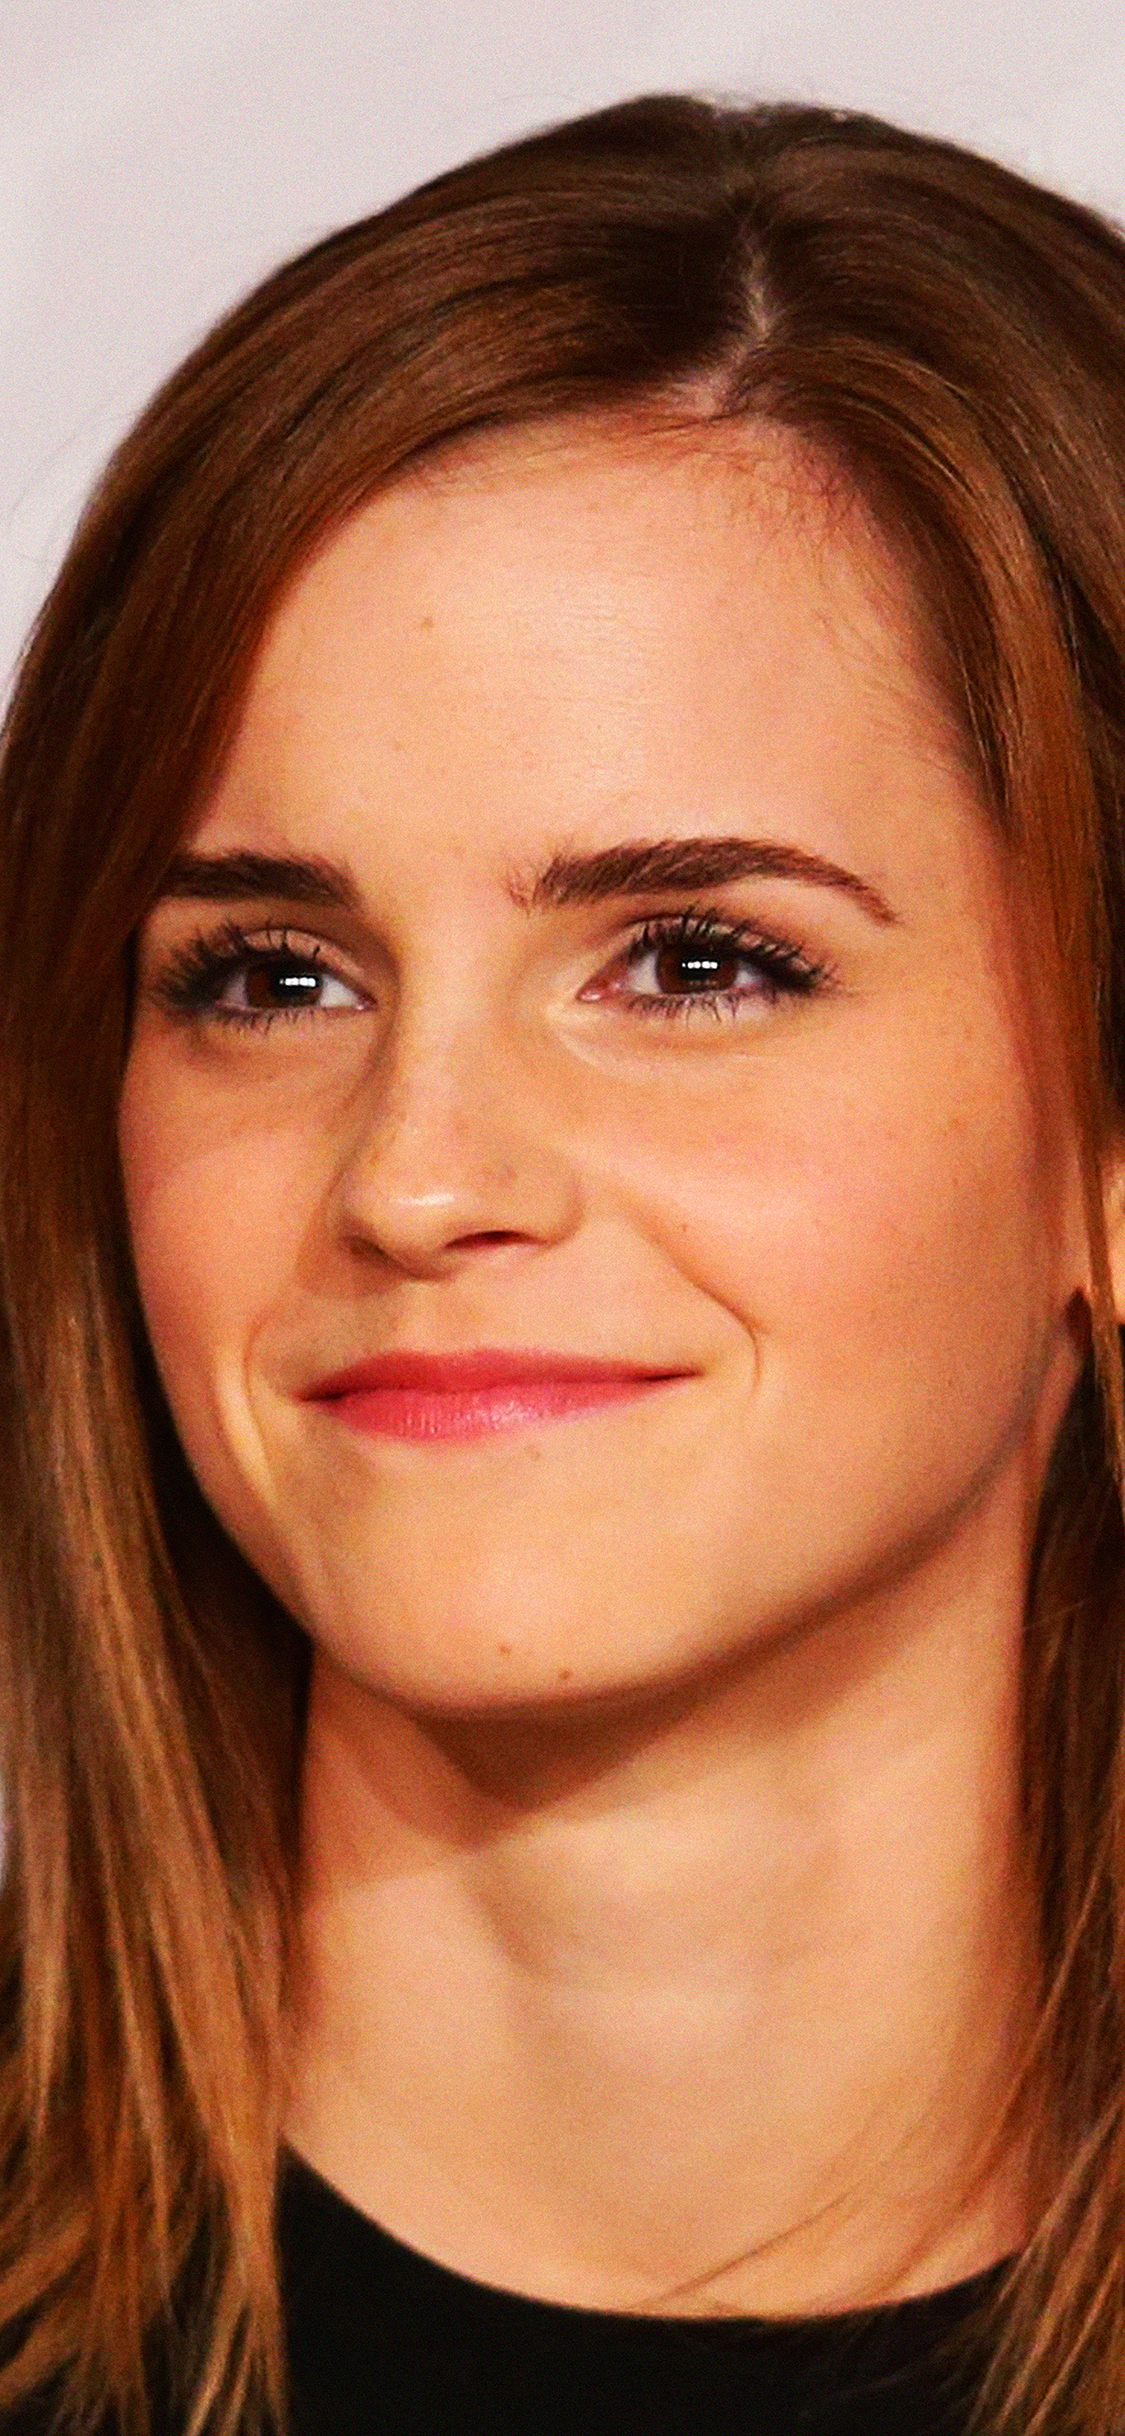 iPhoneXpapers.com-Apple-iPhone-wallpaper-hb52-emma-watson-smile